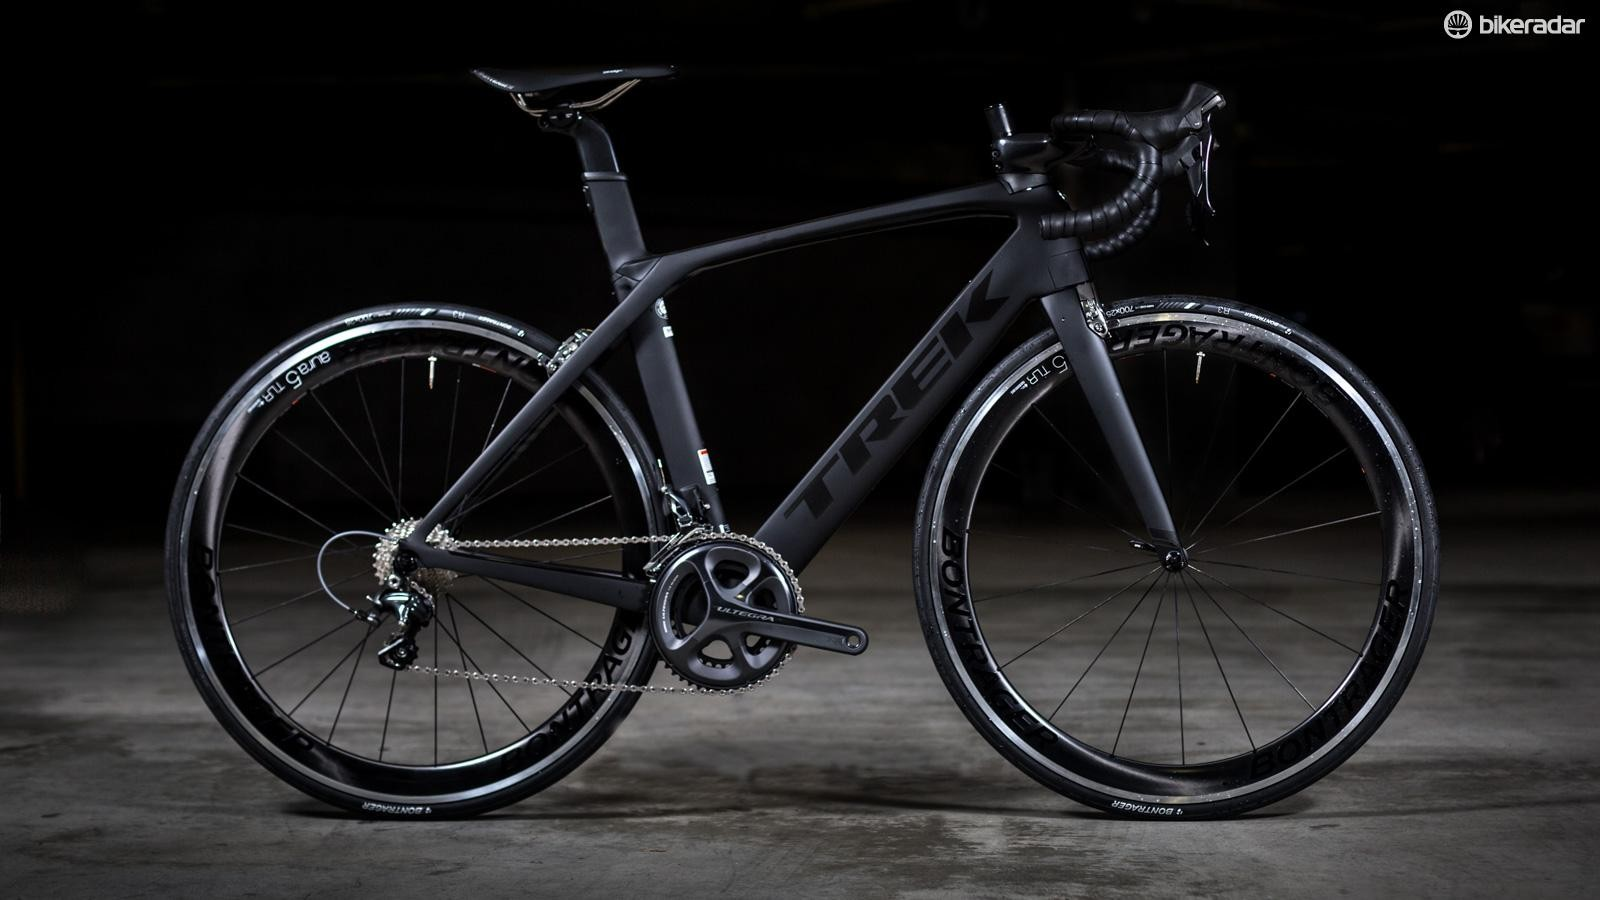 e2294c7f52f Trek's Madone 9.2 is the cheapest build available of the new frame design